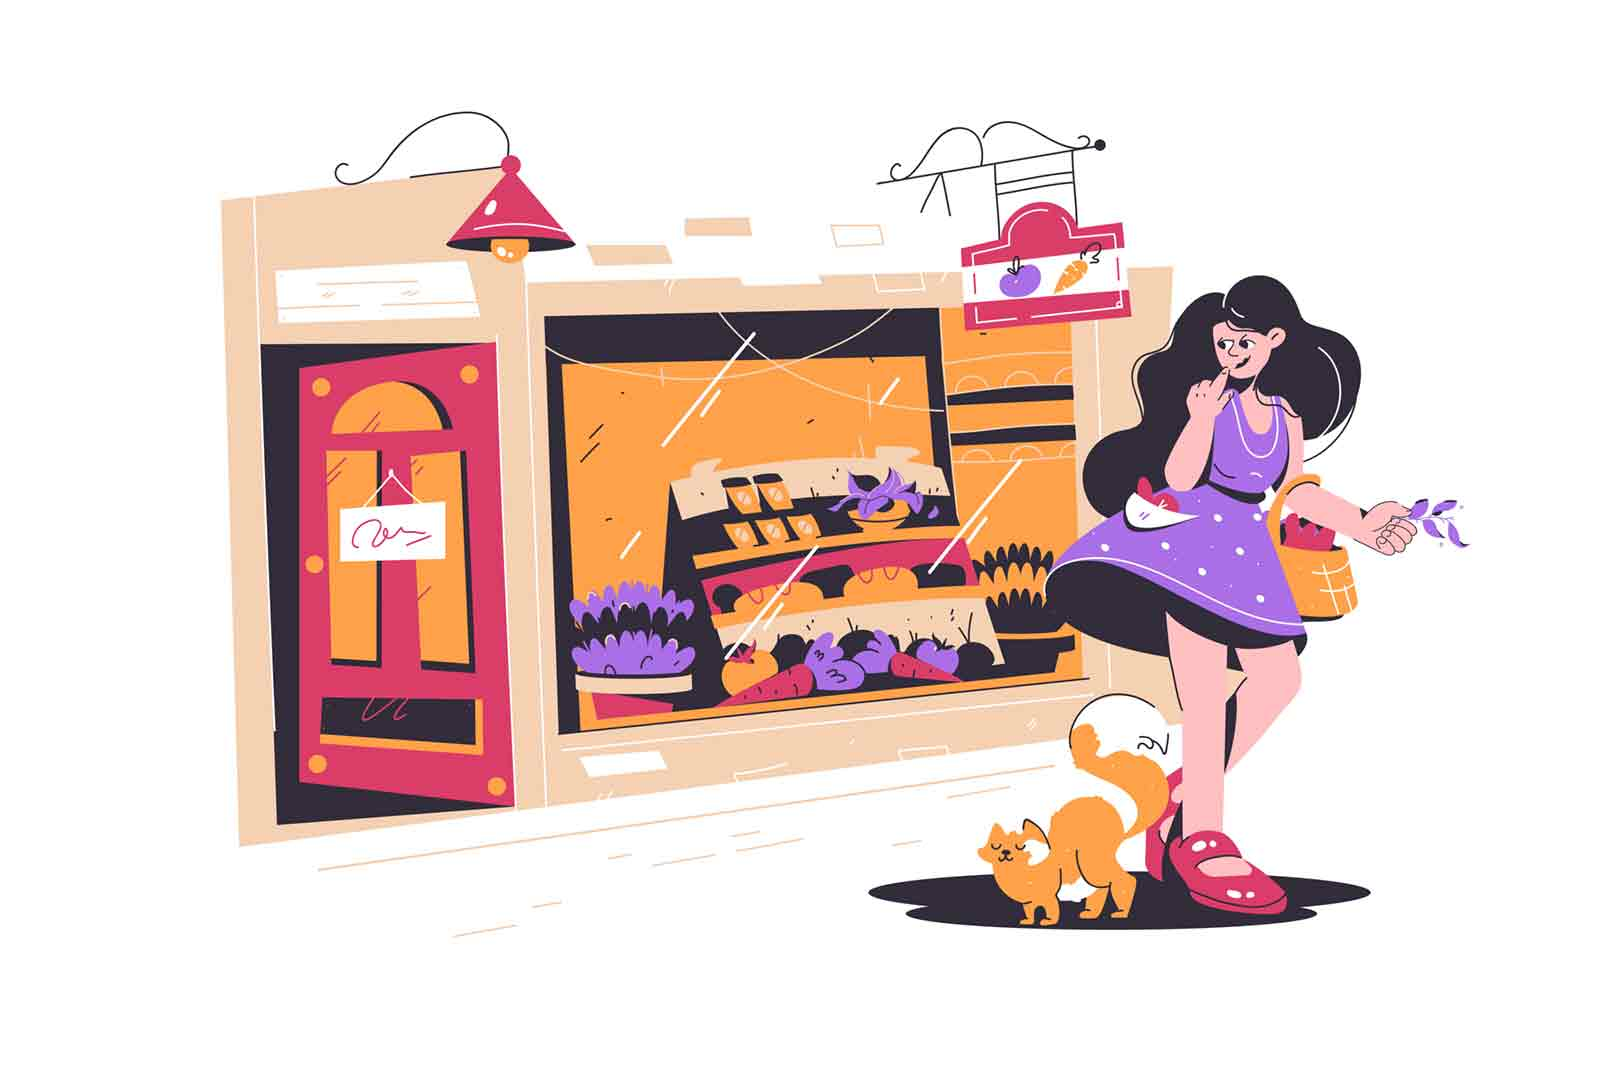 Cute girl shopping in small street shop vector illustration. Fresh grocery products in store flat style. Woman with cat pet. Small family business, shopping concept. Isolated on white background